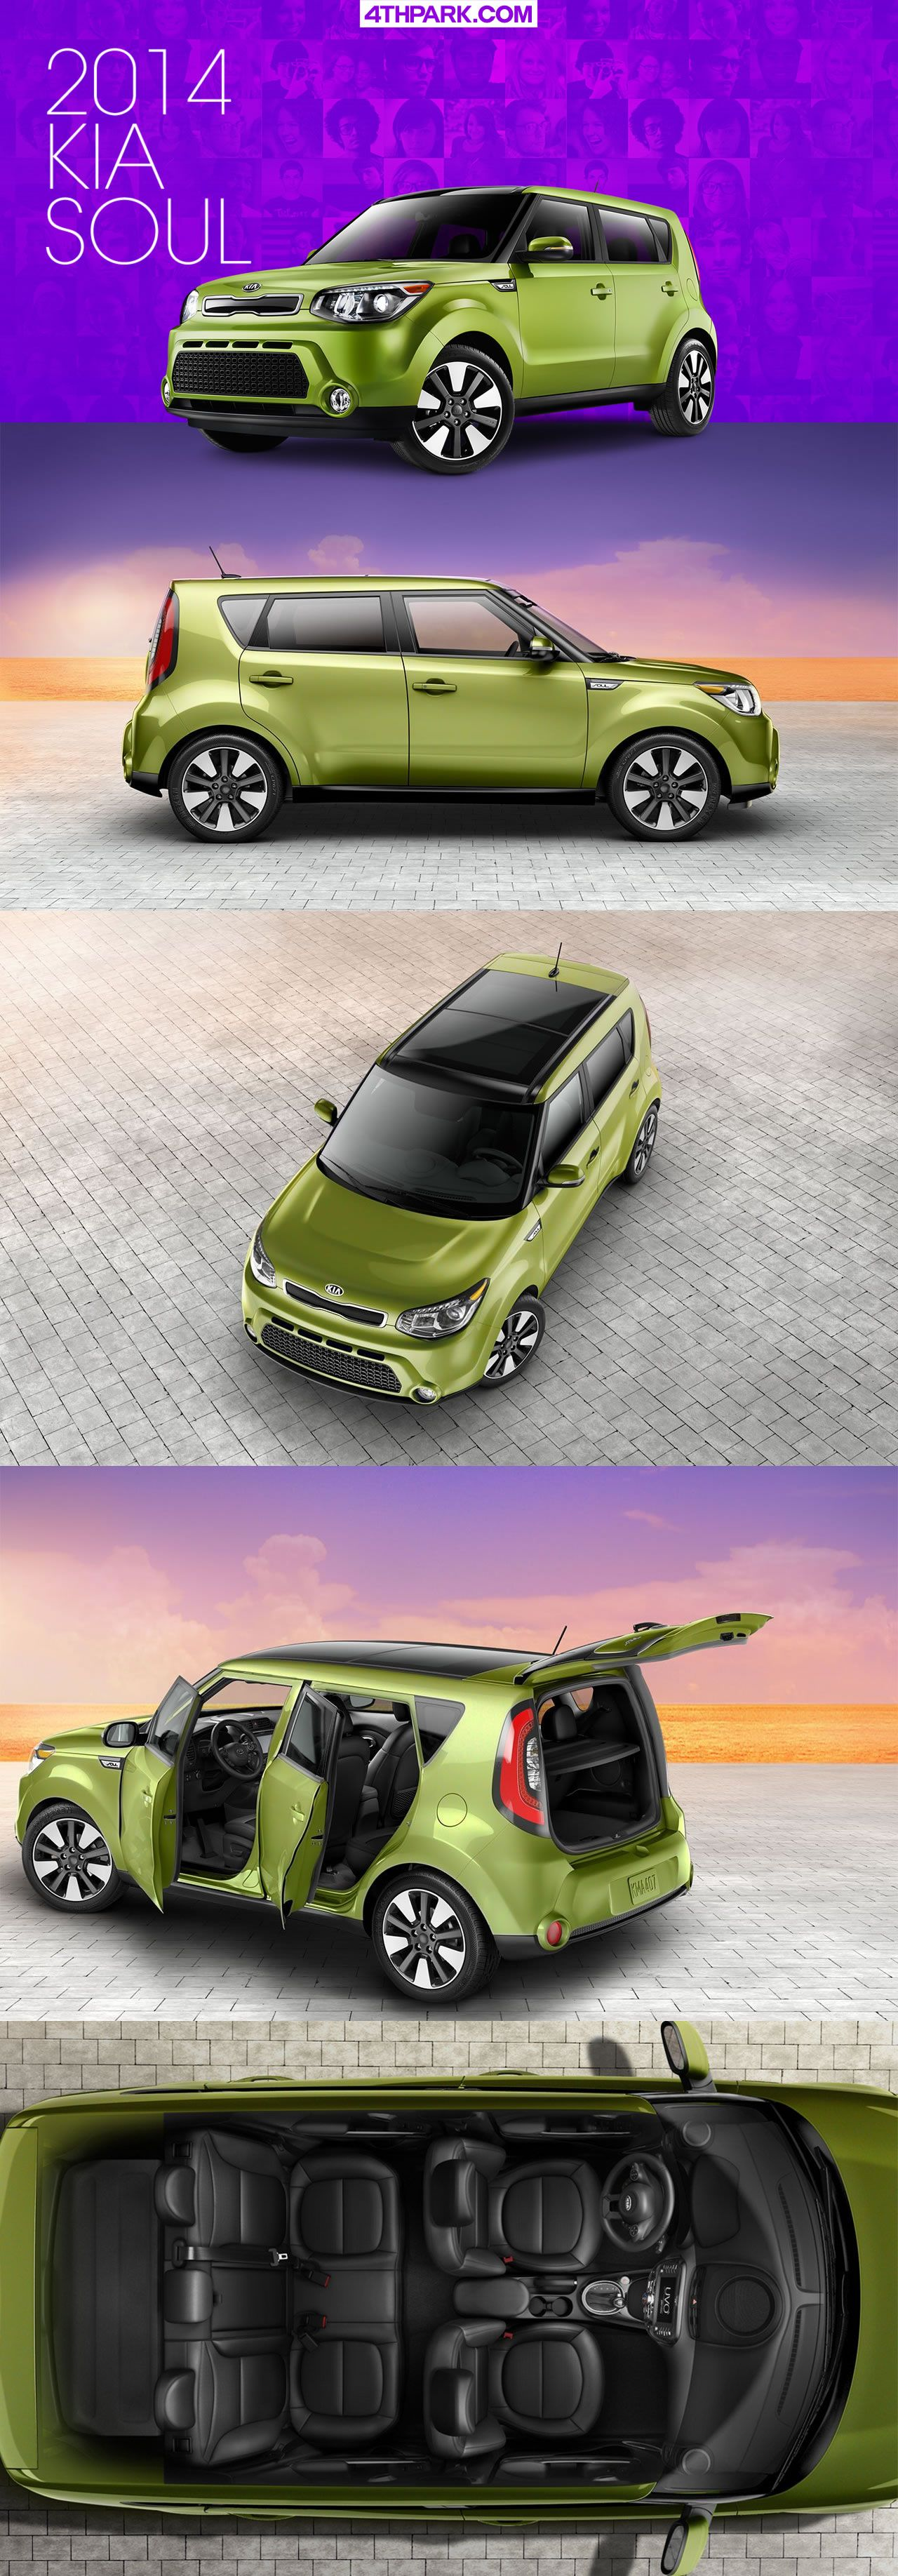 My New Car Yep Even Got The Alien Green Color I Am In Love With This Car It S So Much Fun To Drive Kia Soul Dream Cars Kia